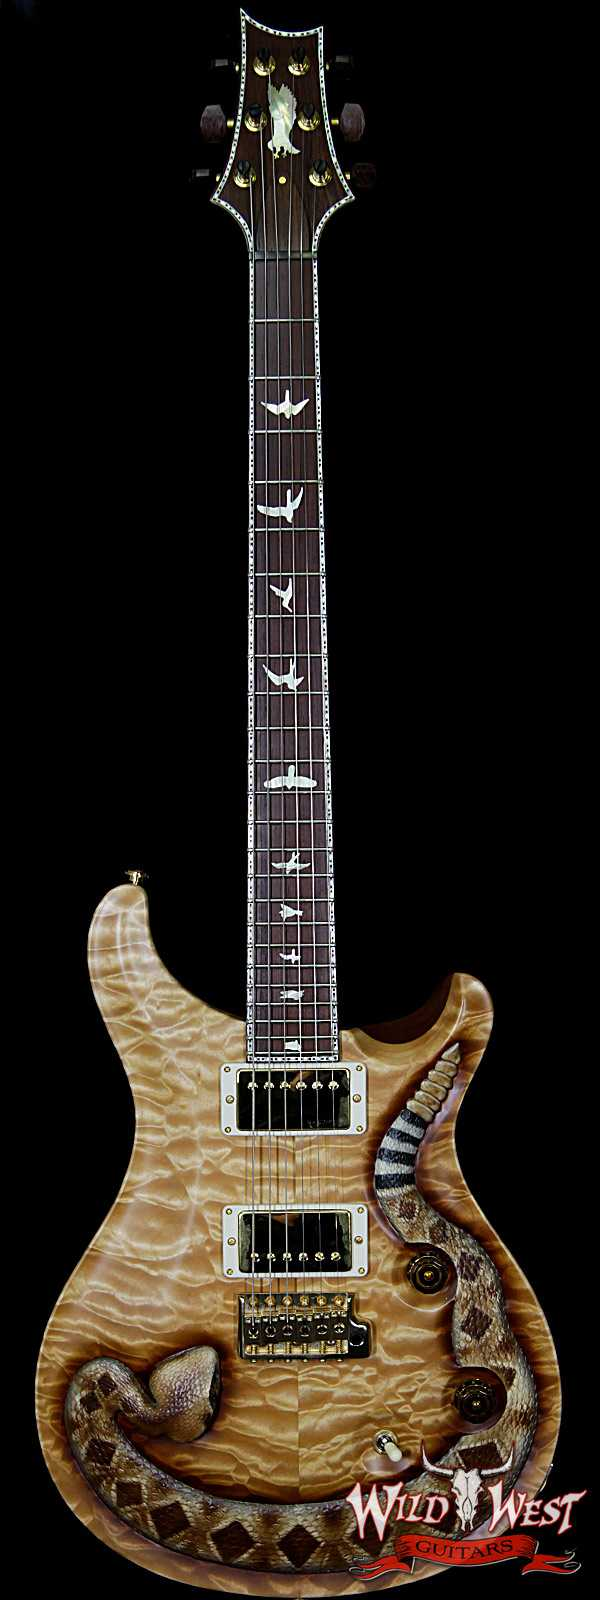 PRS Private Stock Wild West Exclusive Custom 24 Snake LTD # 6 of 6 Hand Carved Quilt Maple Top